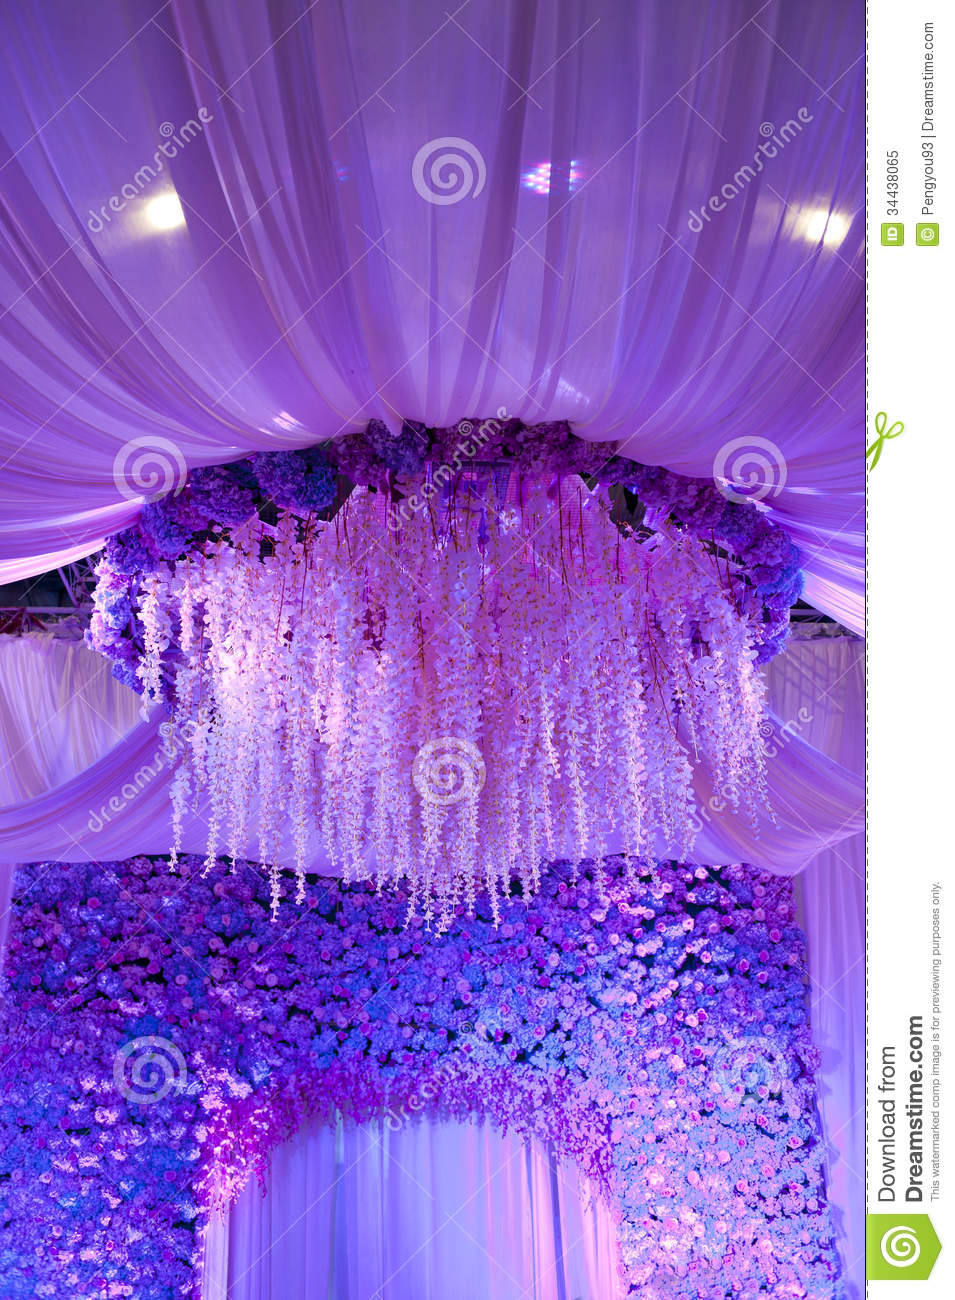 Wedding flowers background design stage royalty free stock for Background stage decoration